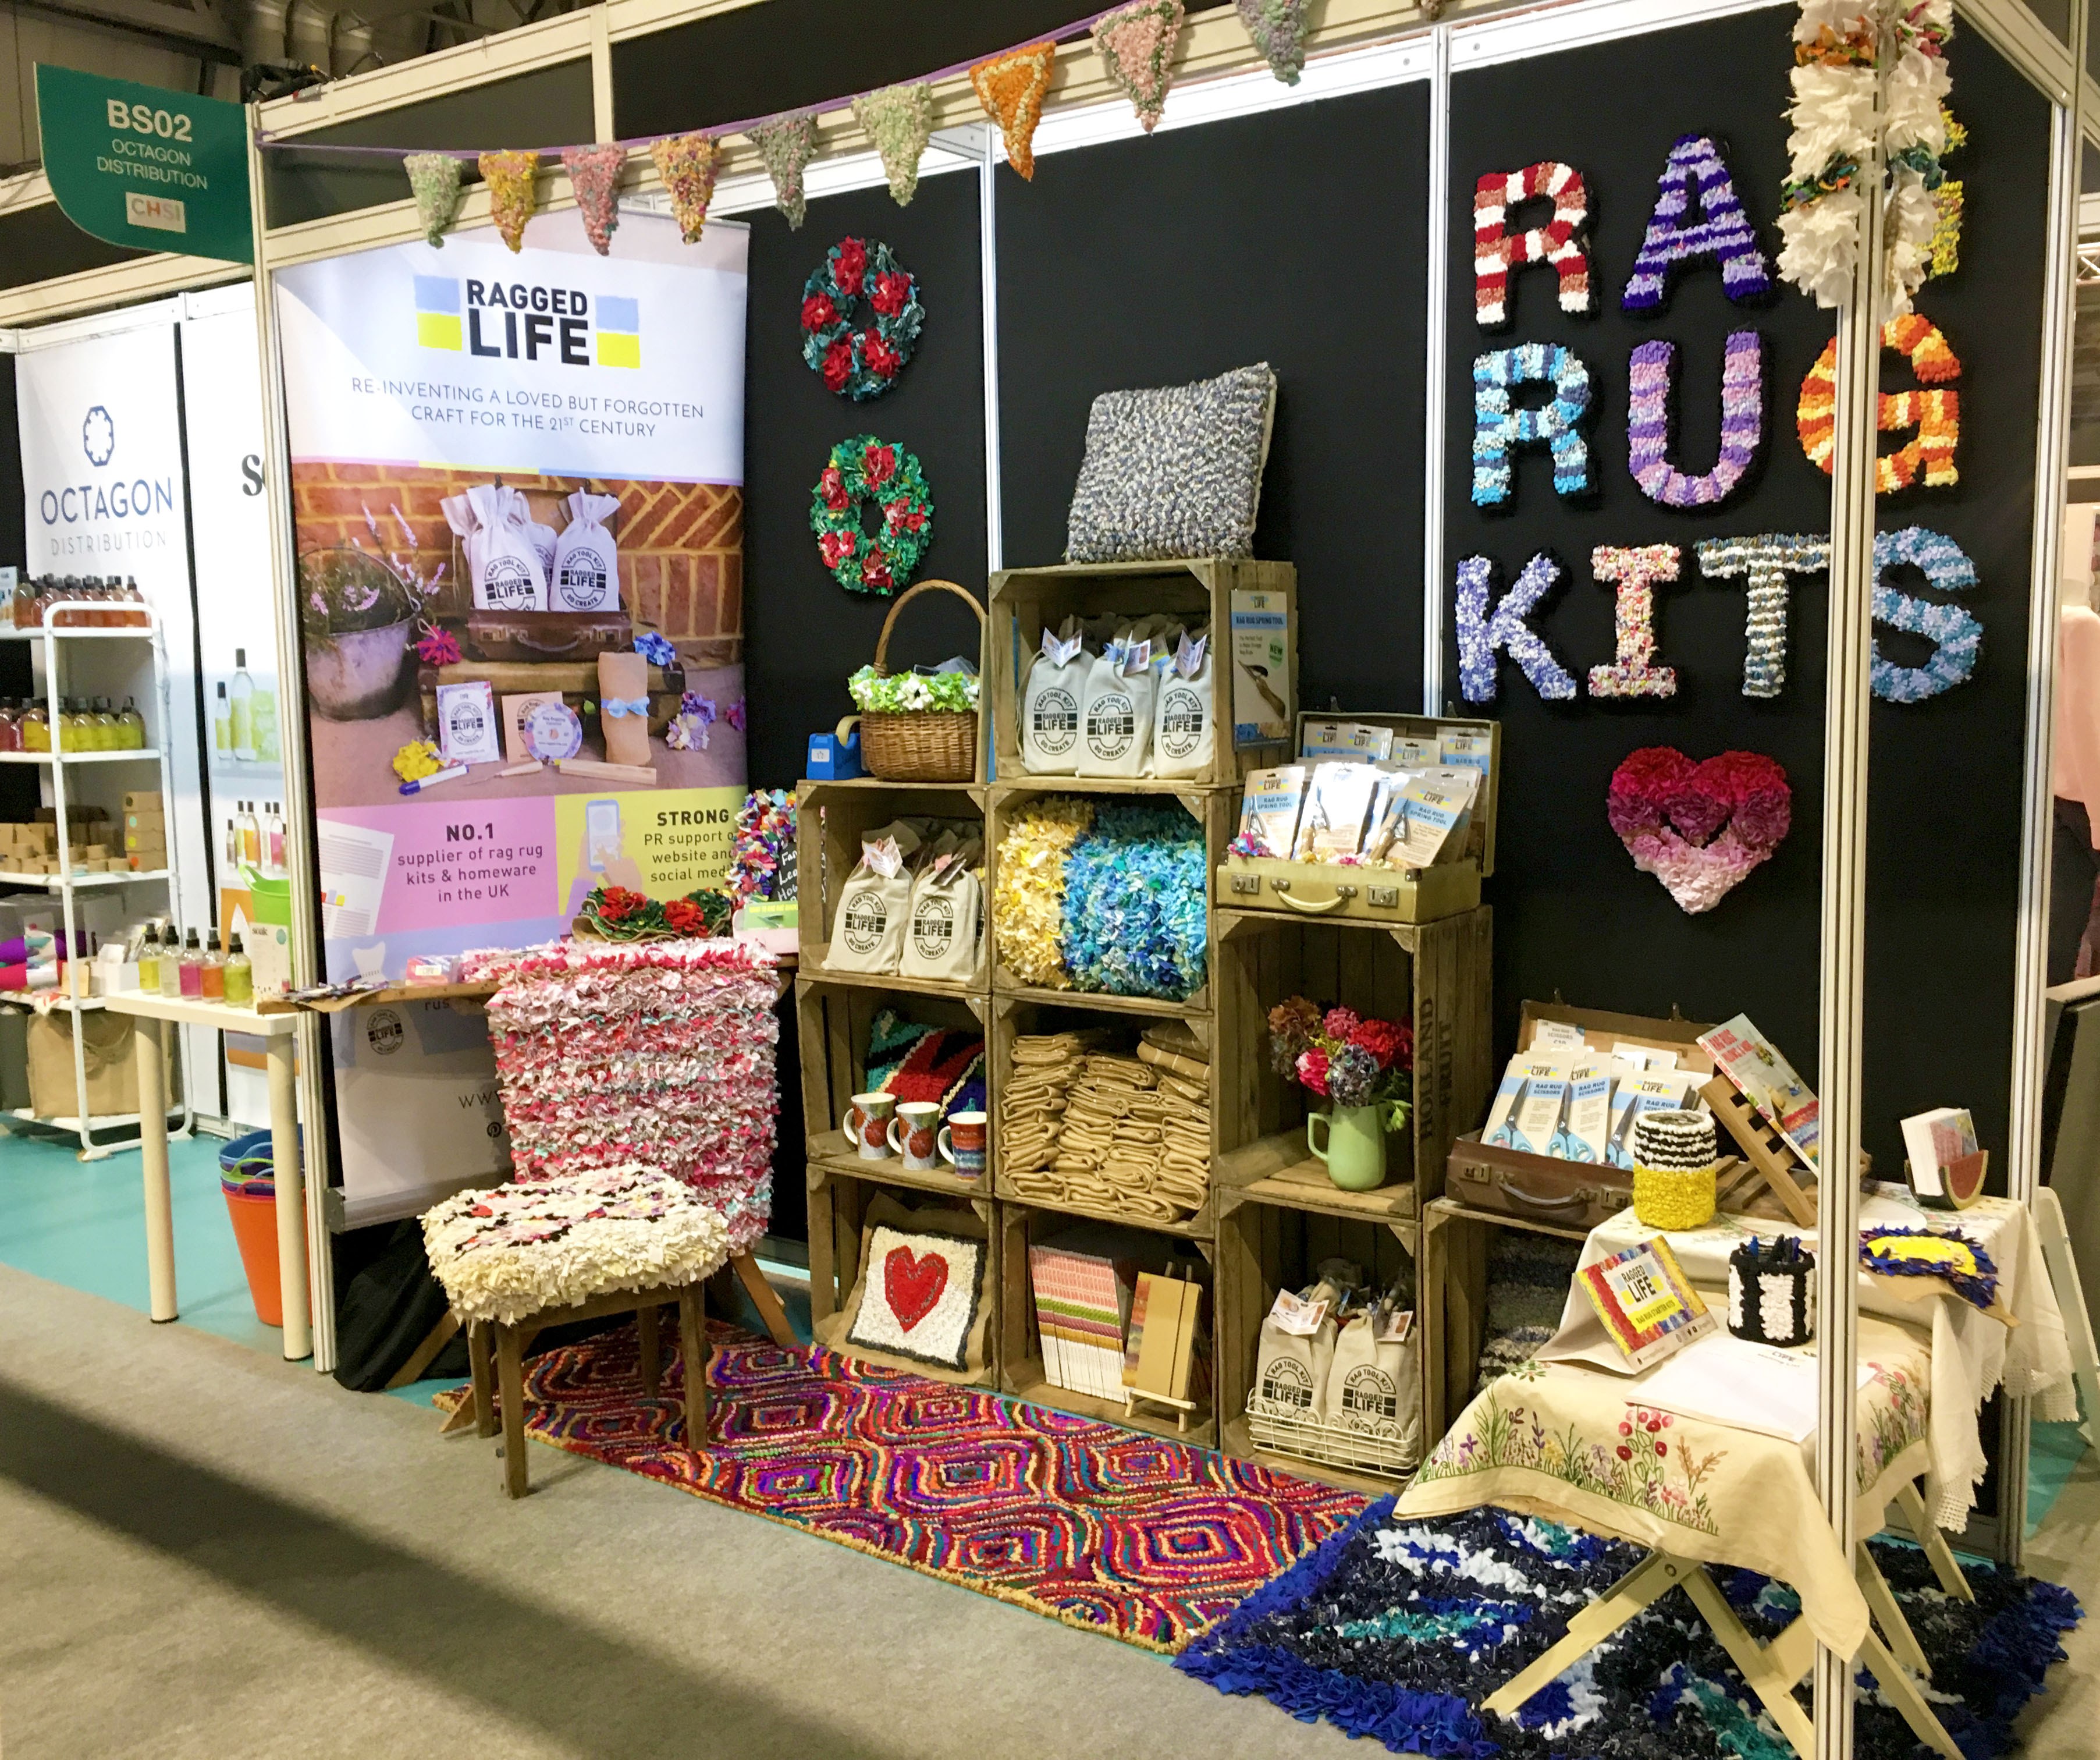 Ragged Life Rag Rug Stand at CHSI Stitches 2018